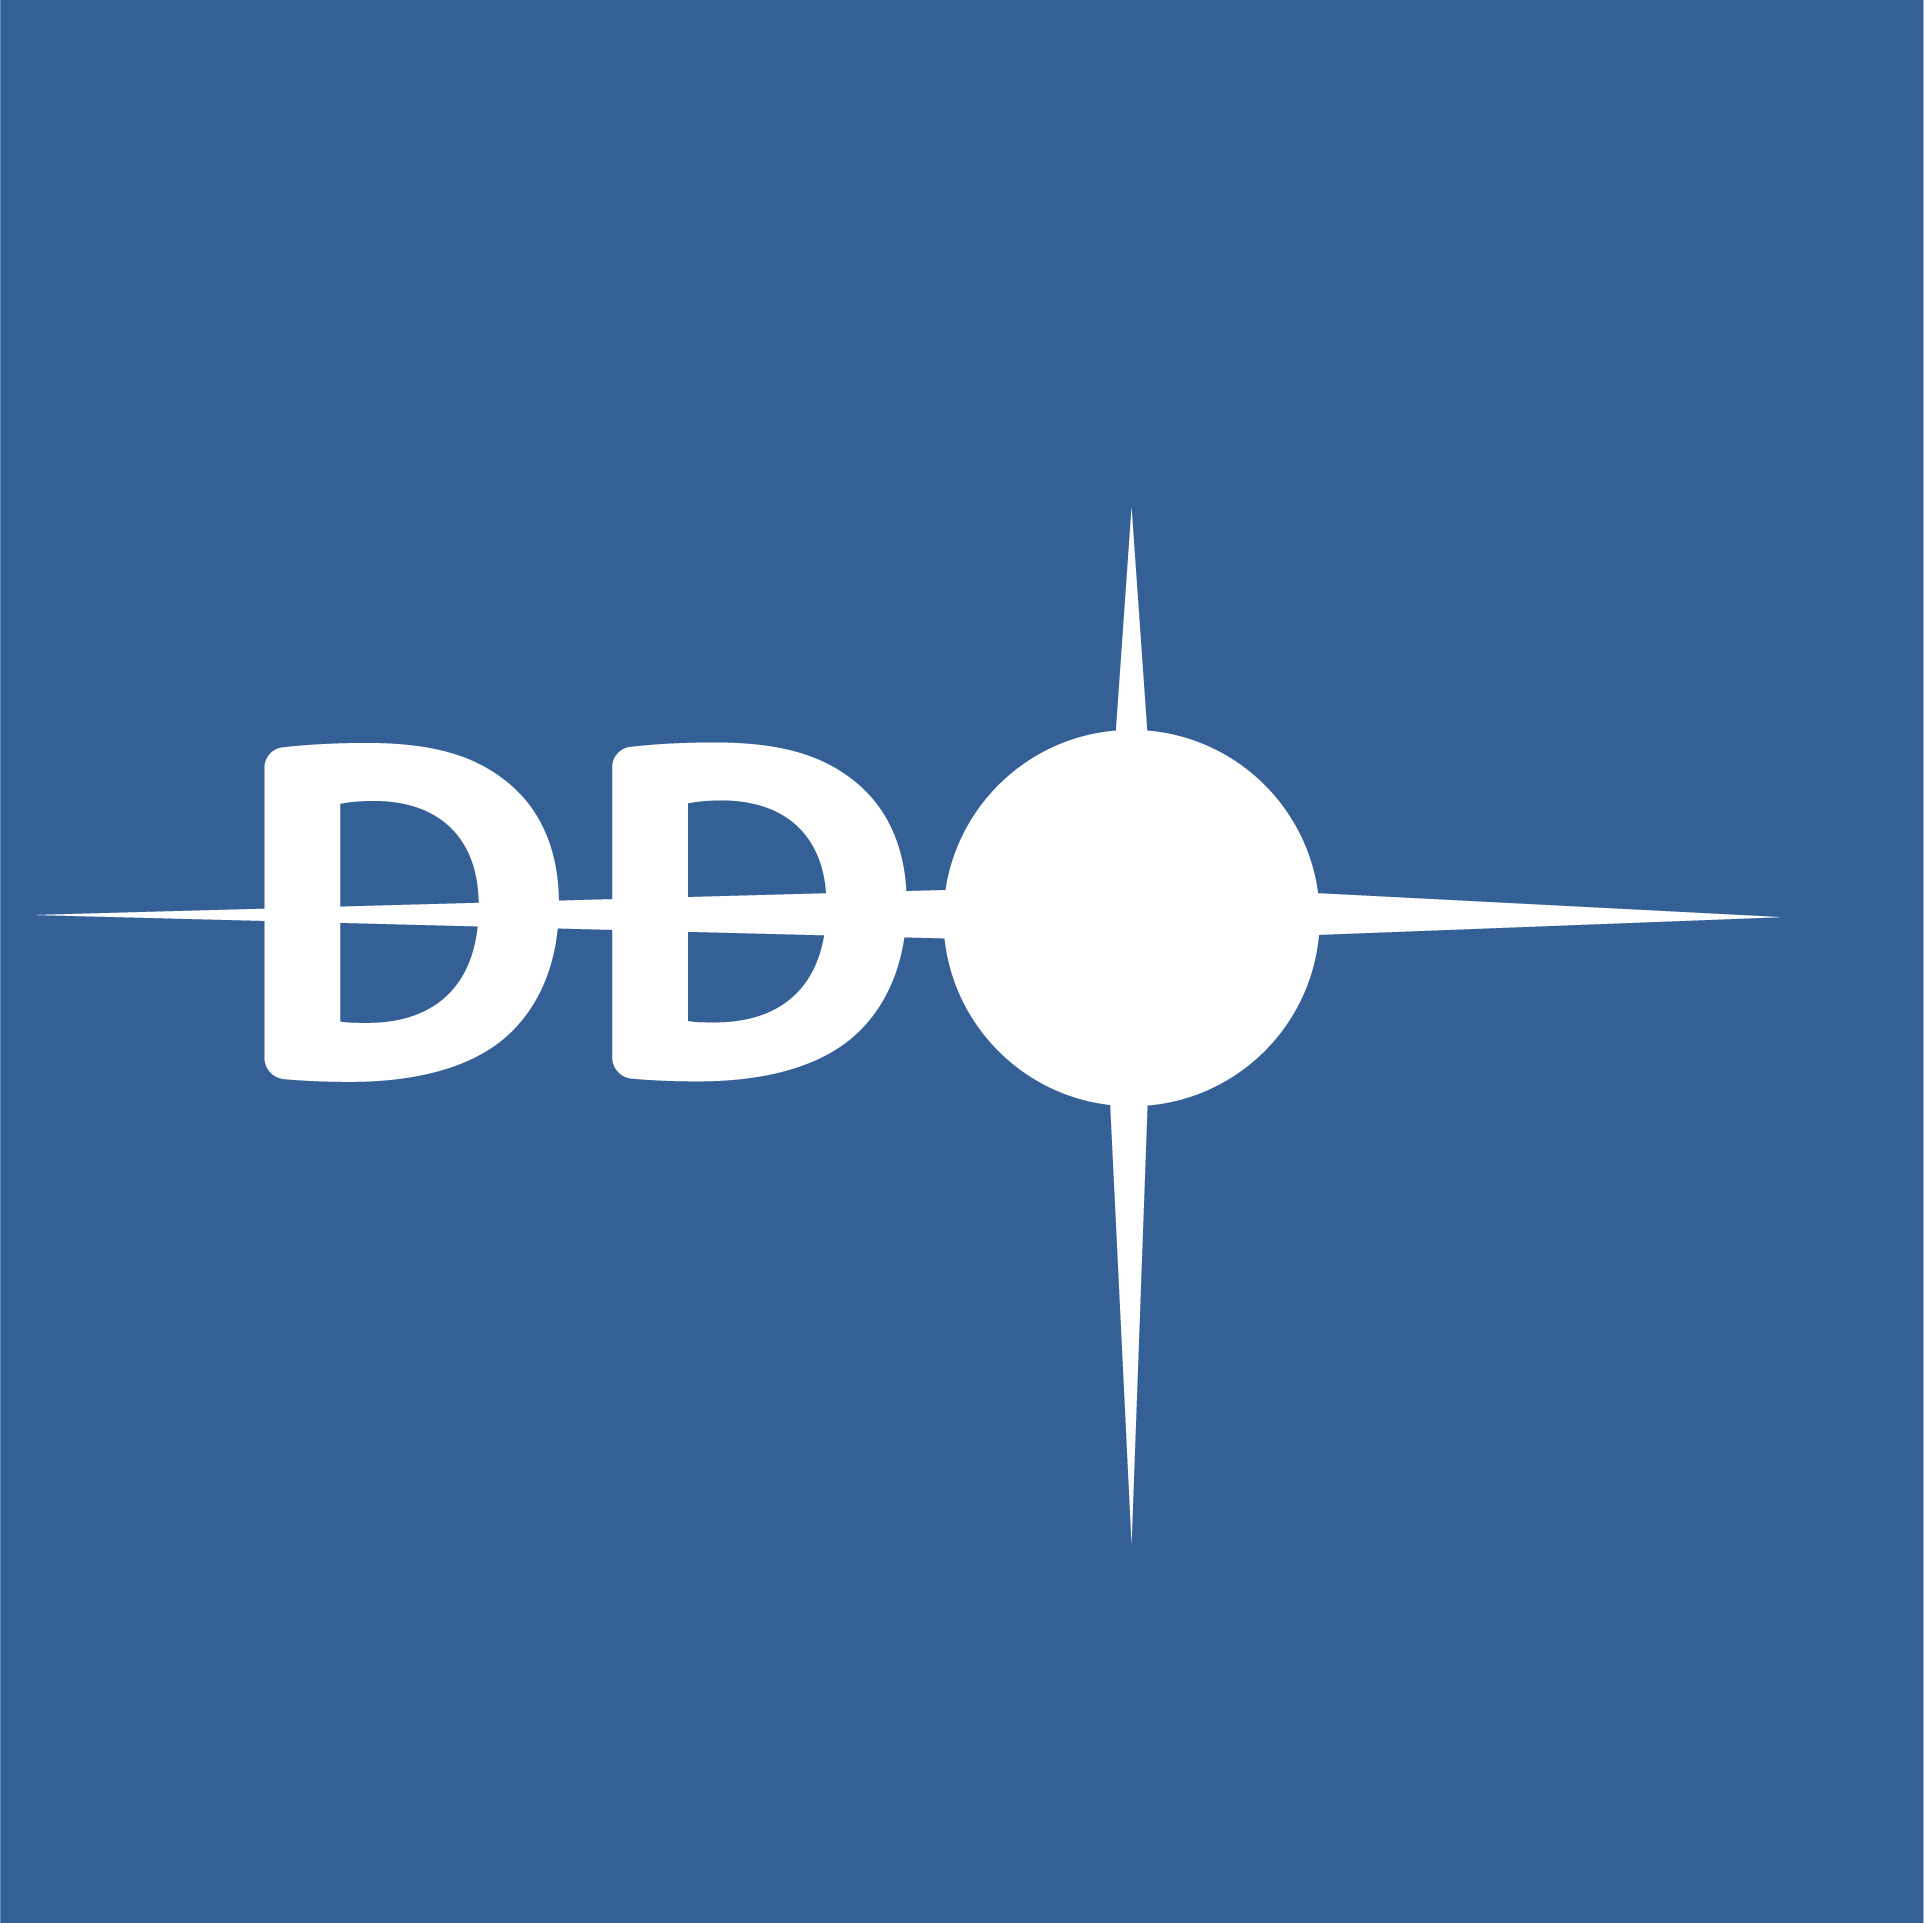 Diversability Development Organization (DDO)